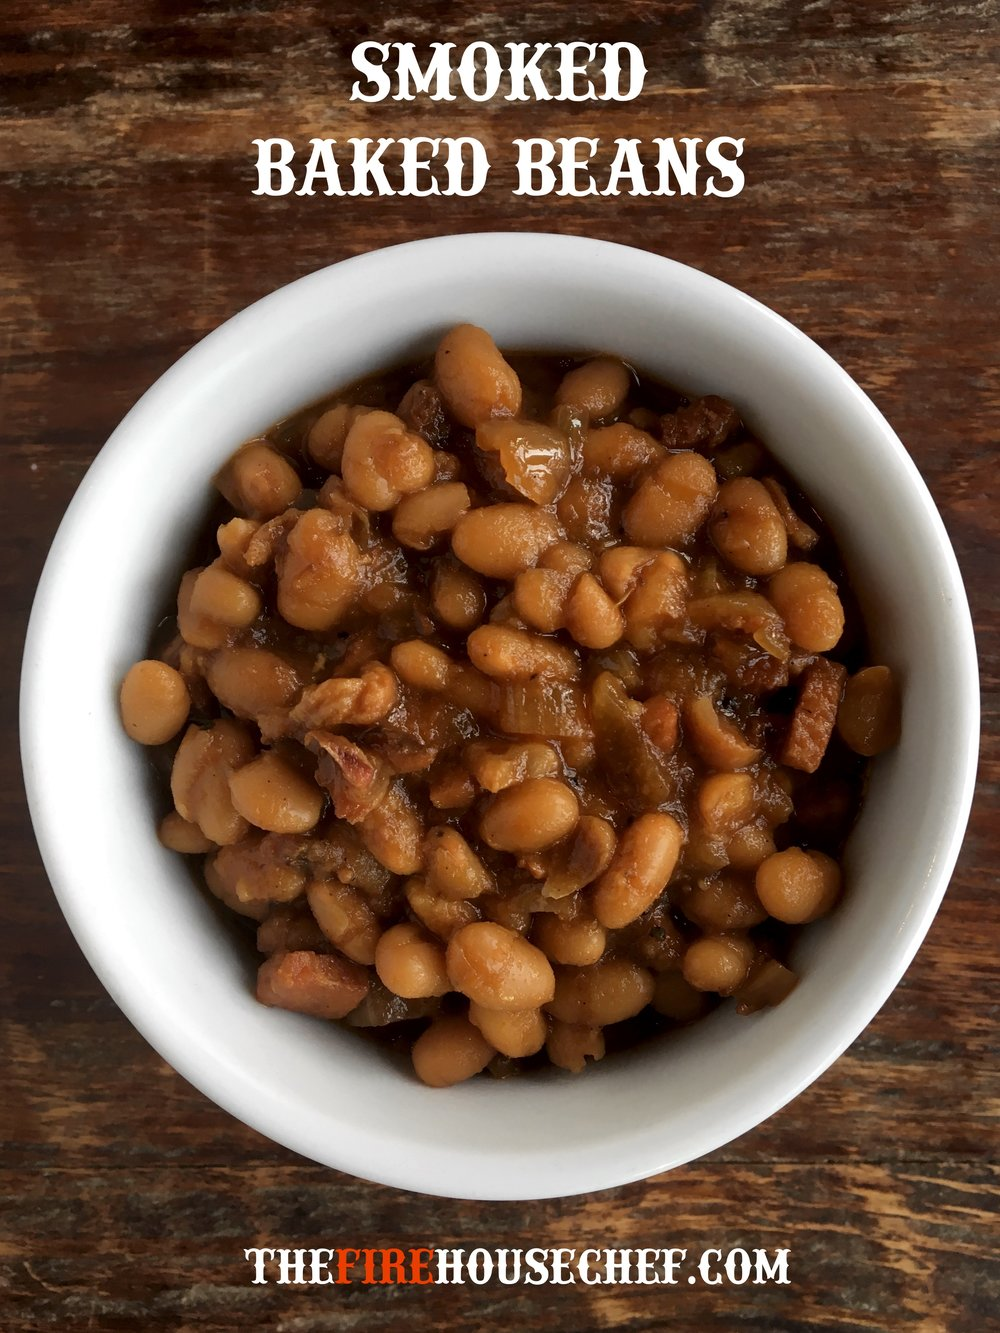 Smoked Baked Beans Promo Pic.jpg